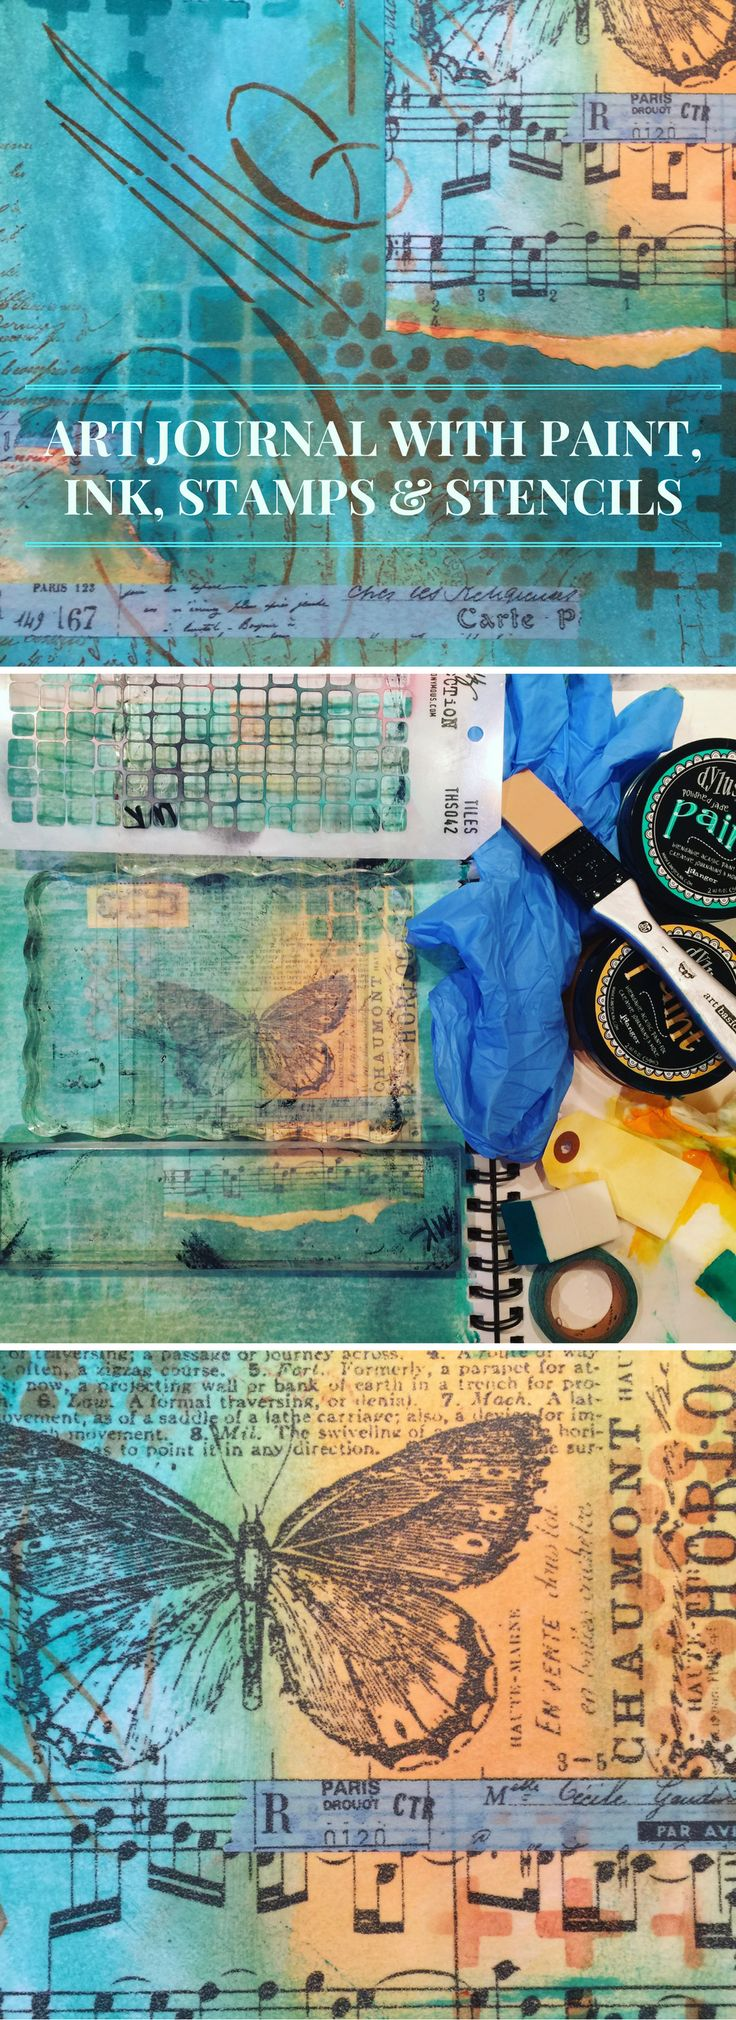 August Art Journaling - Marjie Kemper shares 4 art journal pages